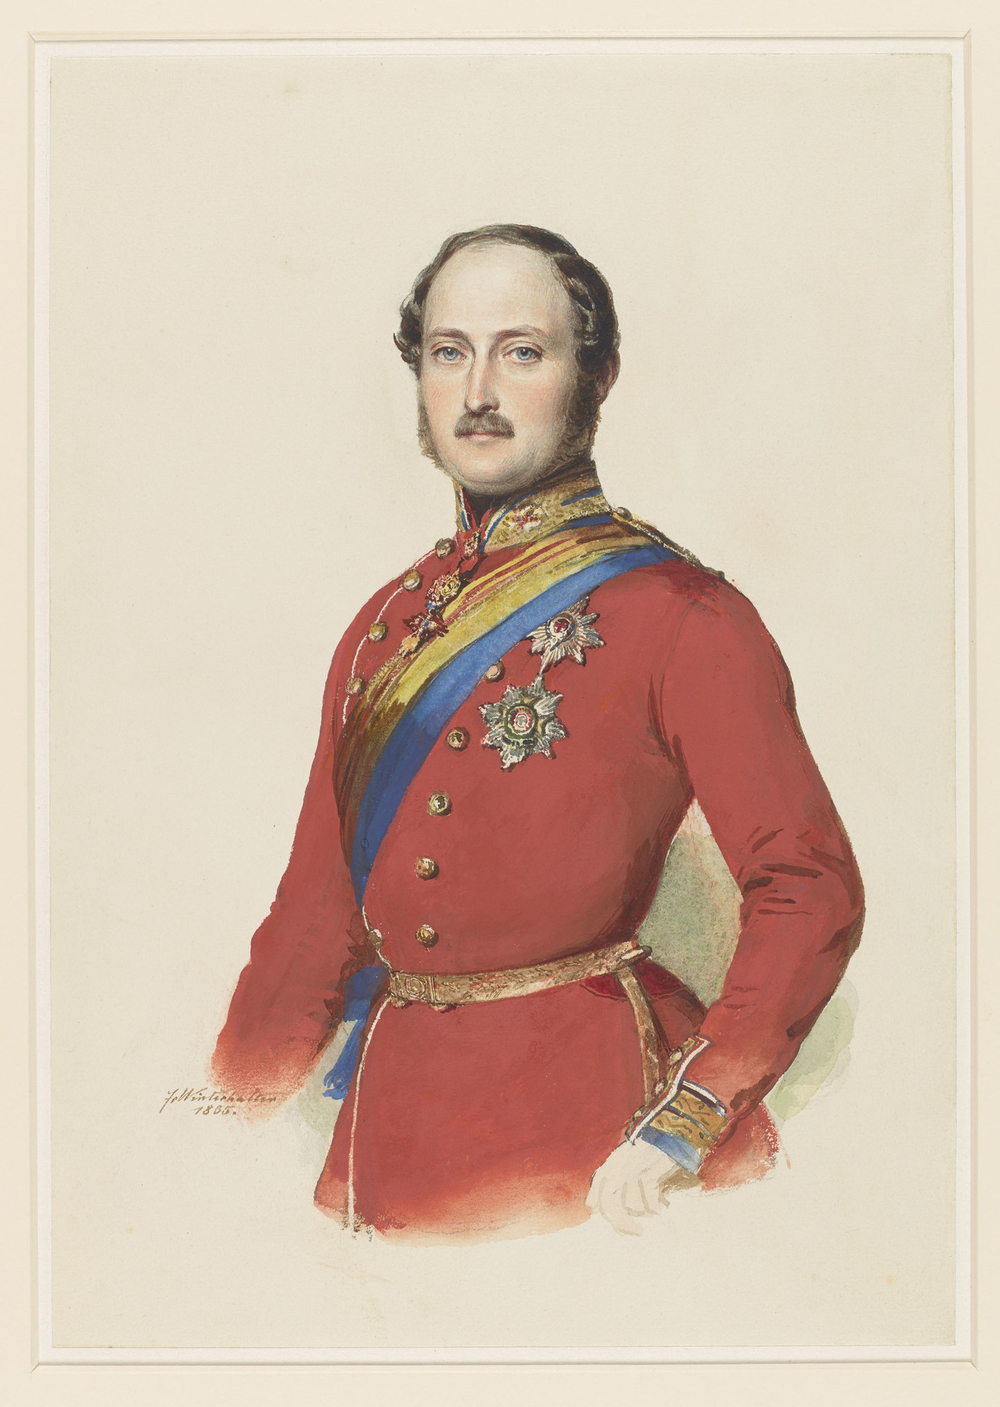 A three-quarter lengthwatercolour portraitof Prince Albert, facing front, wearing the uniform of the Grenadier Guards, the ribbon and star of the Garter, the star of Bath, the badge of Golden Fleece, and the House order of Saxe-Ernst. Signed a